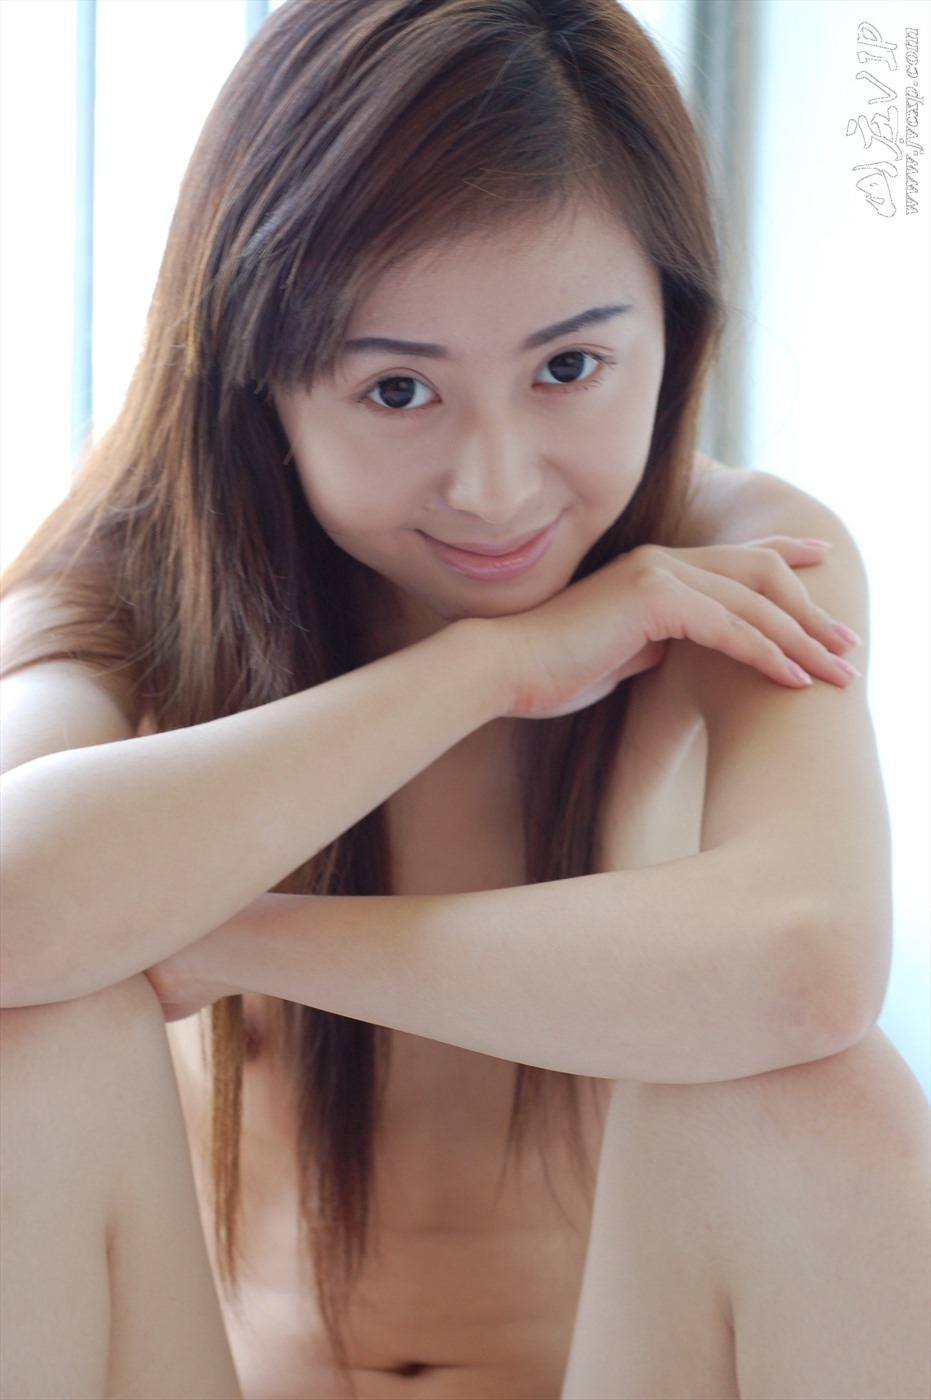 Image Dsc Jpg Chinese Nude Nana Want To Enjoy Some Erotic